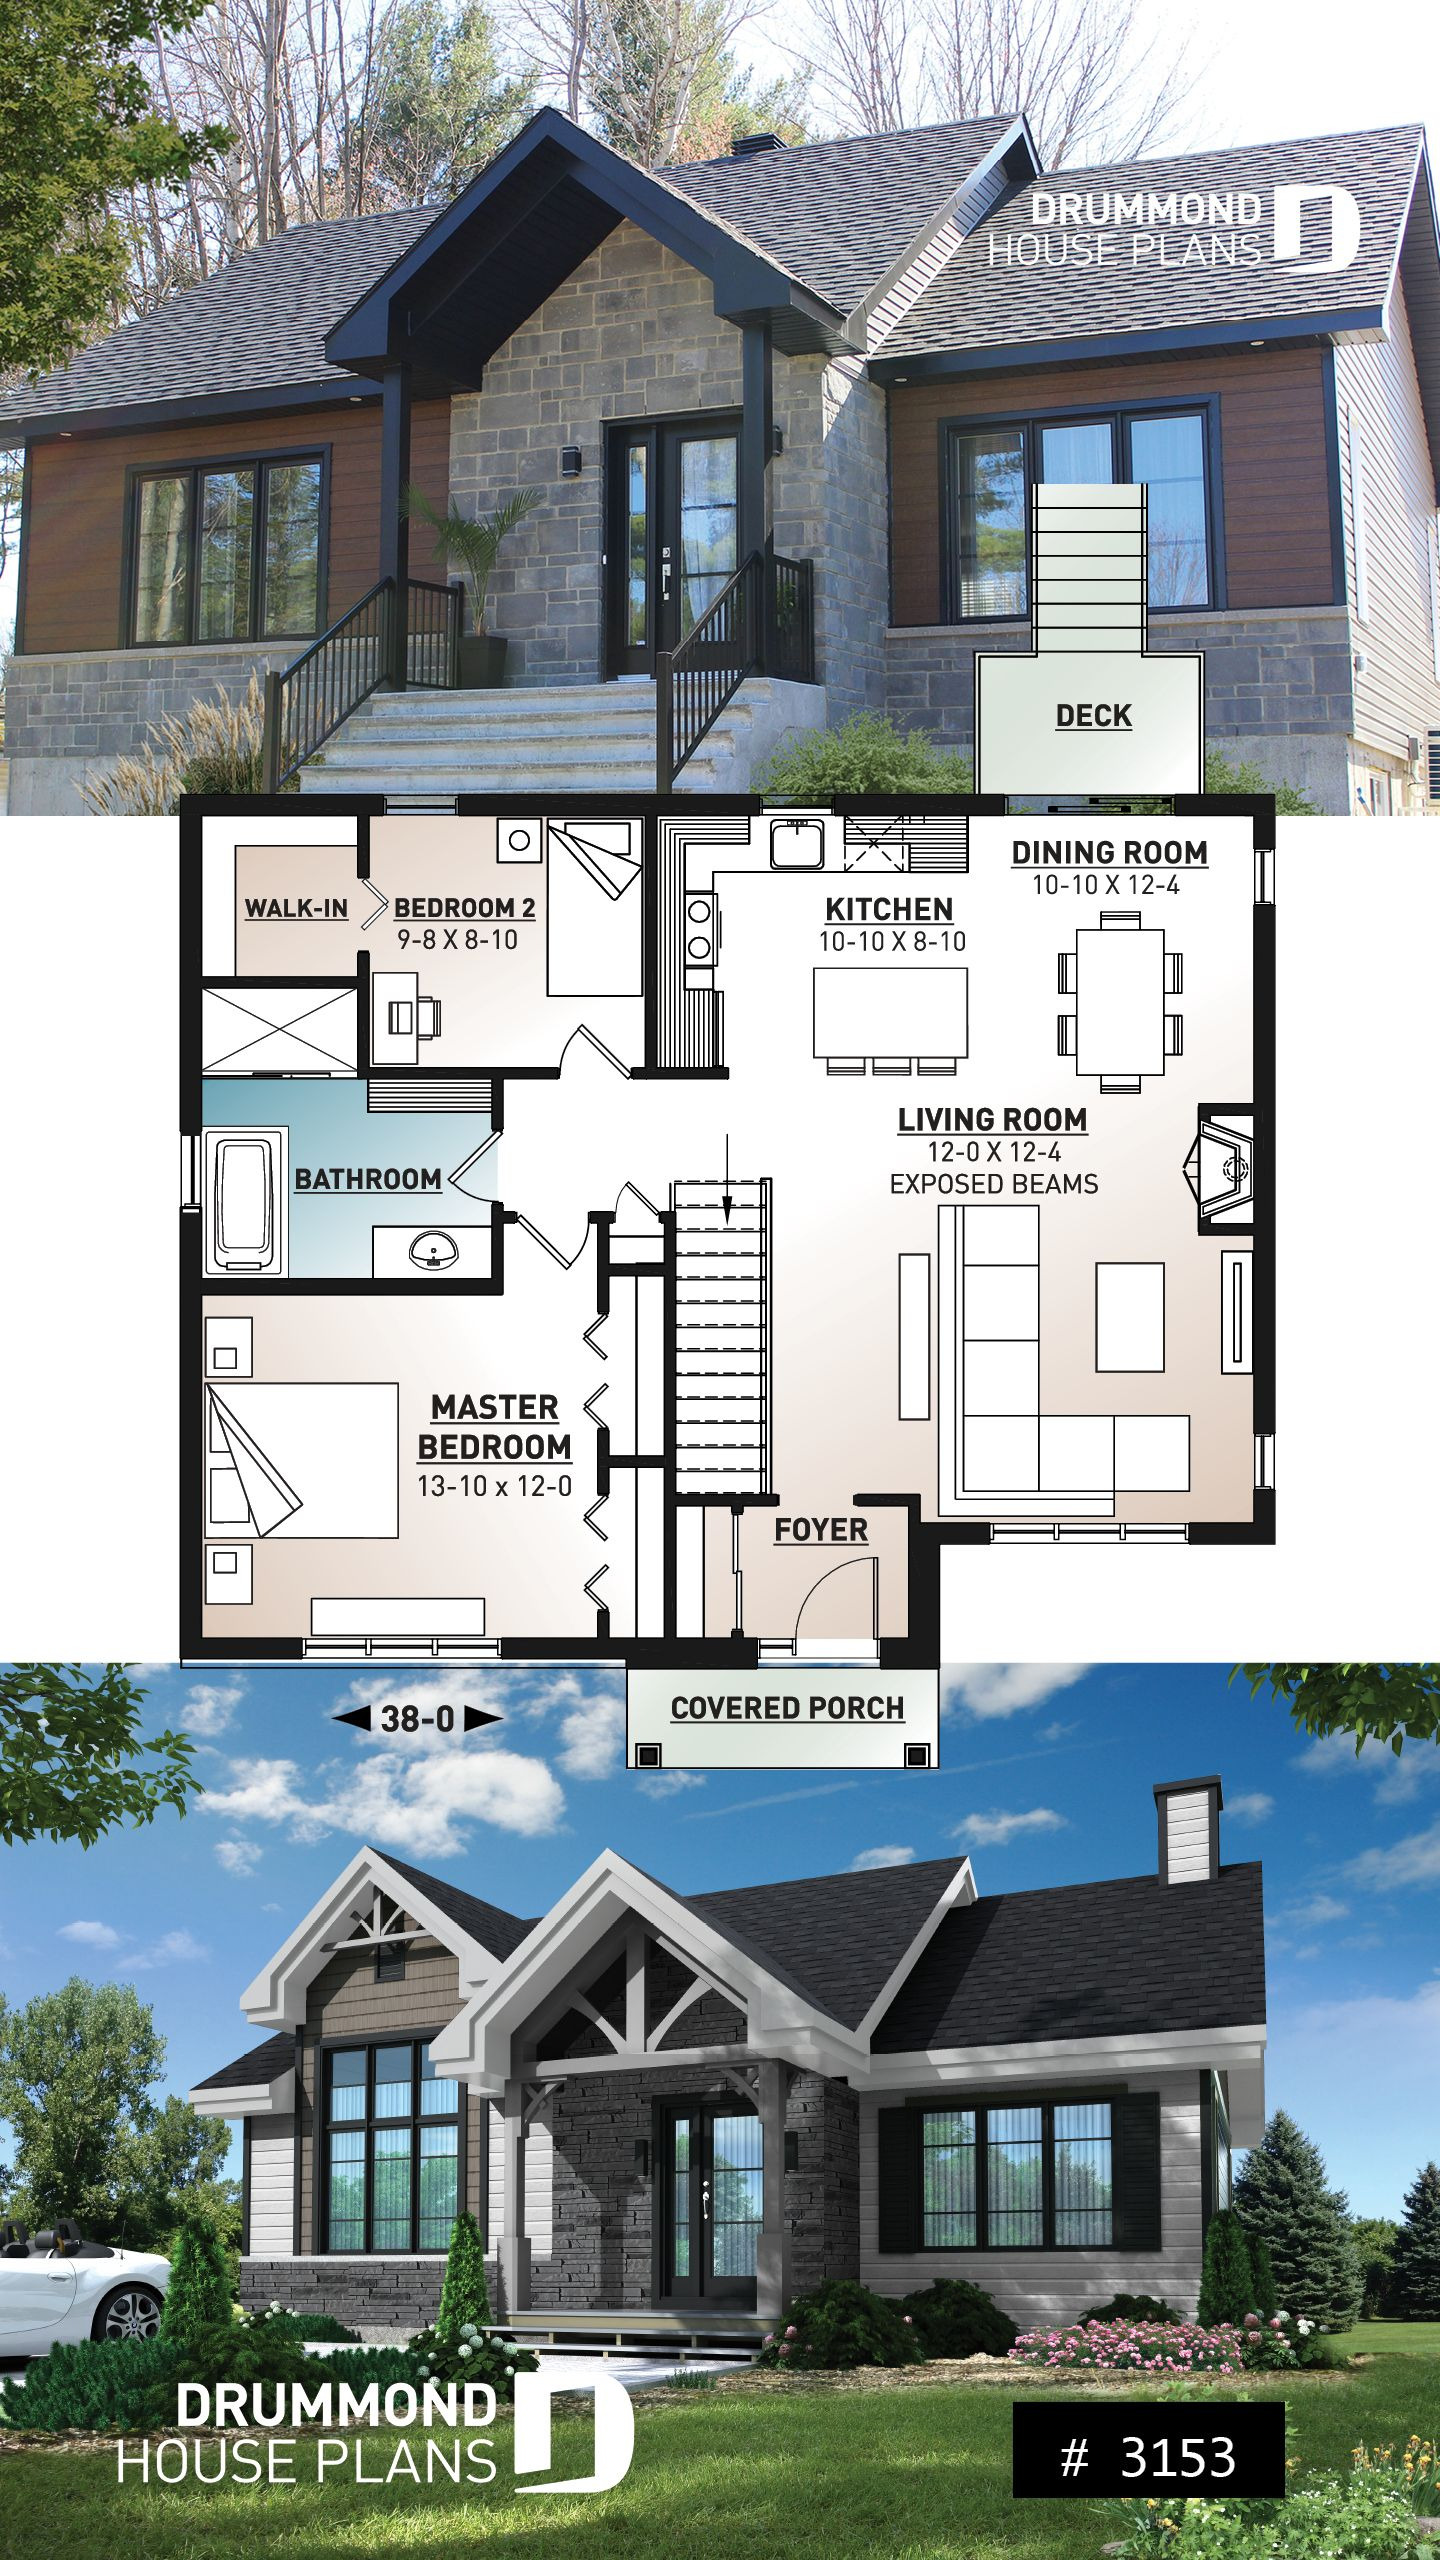 Small Rambler House Plans Luxury Modern Ranch House Plan 2 to 4 Bedrooms Low Cost